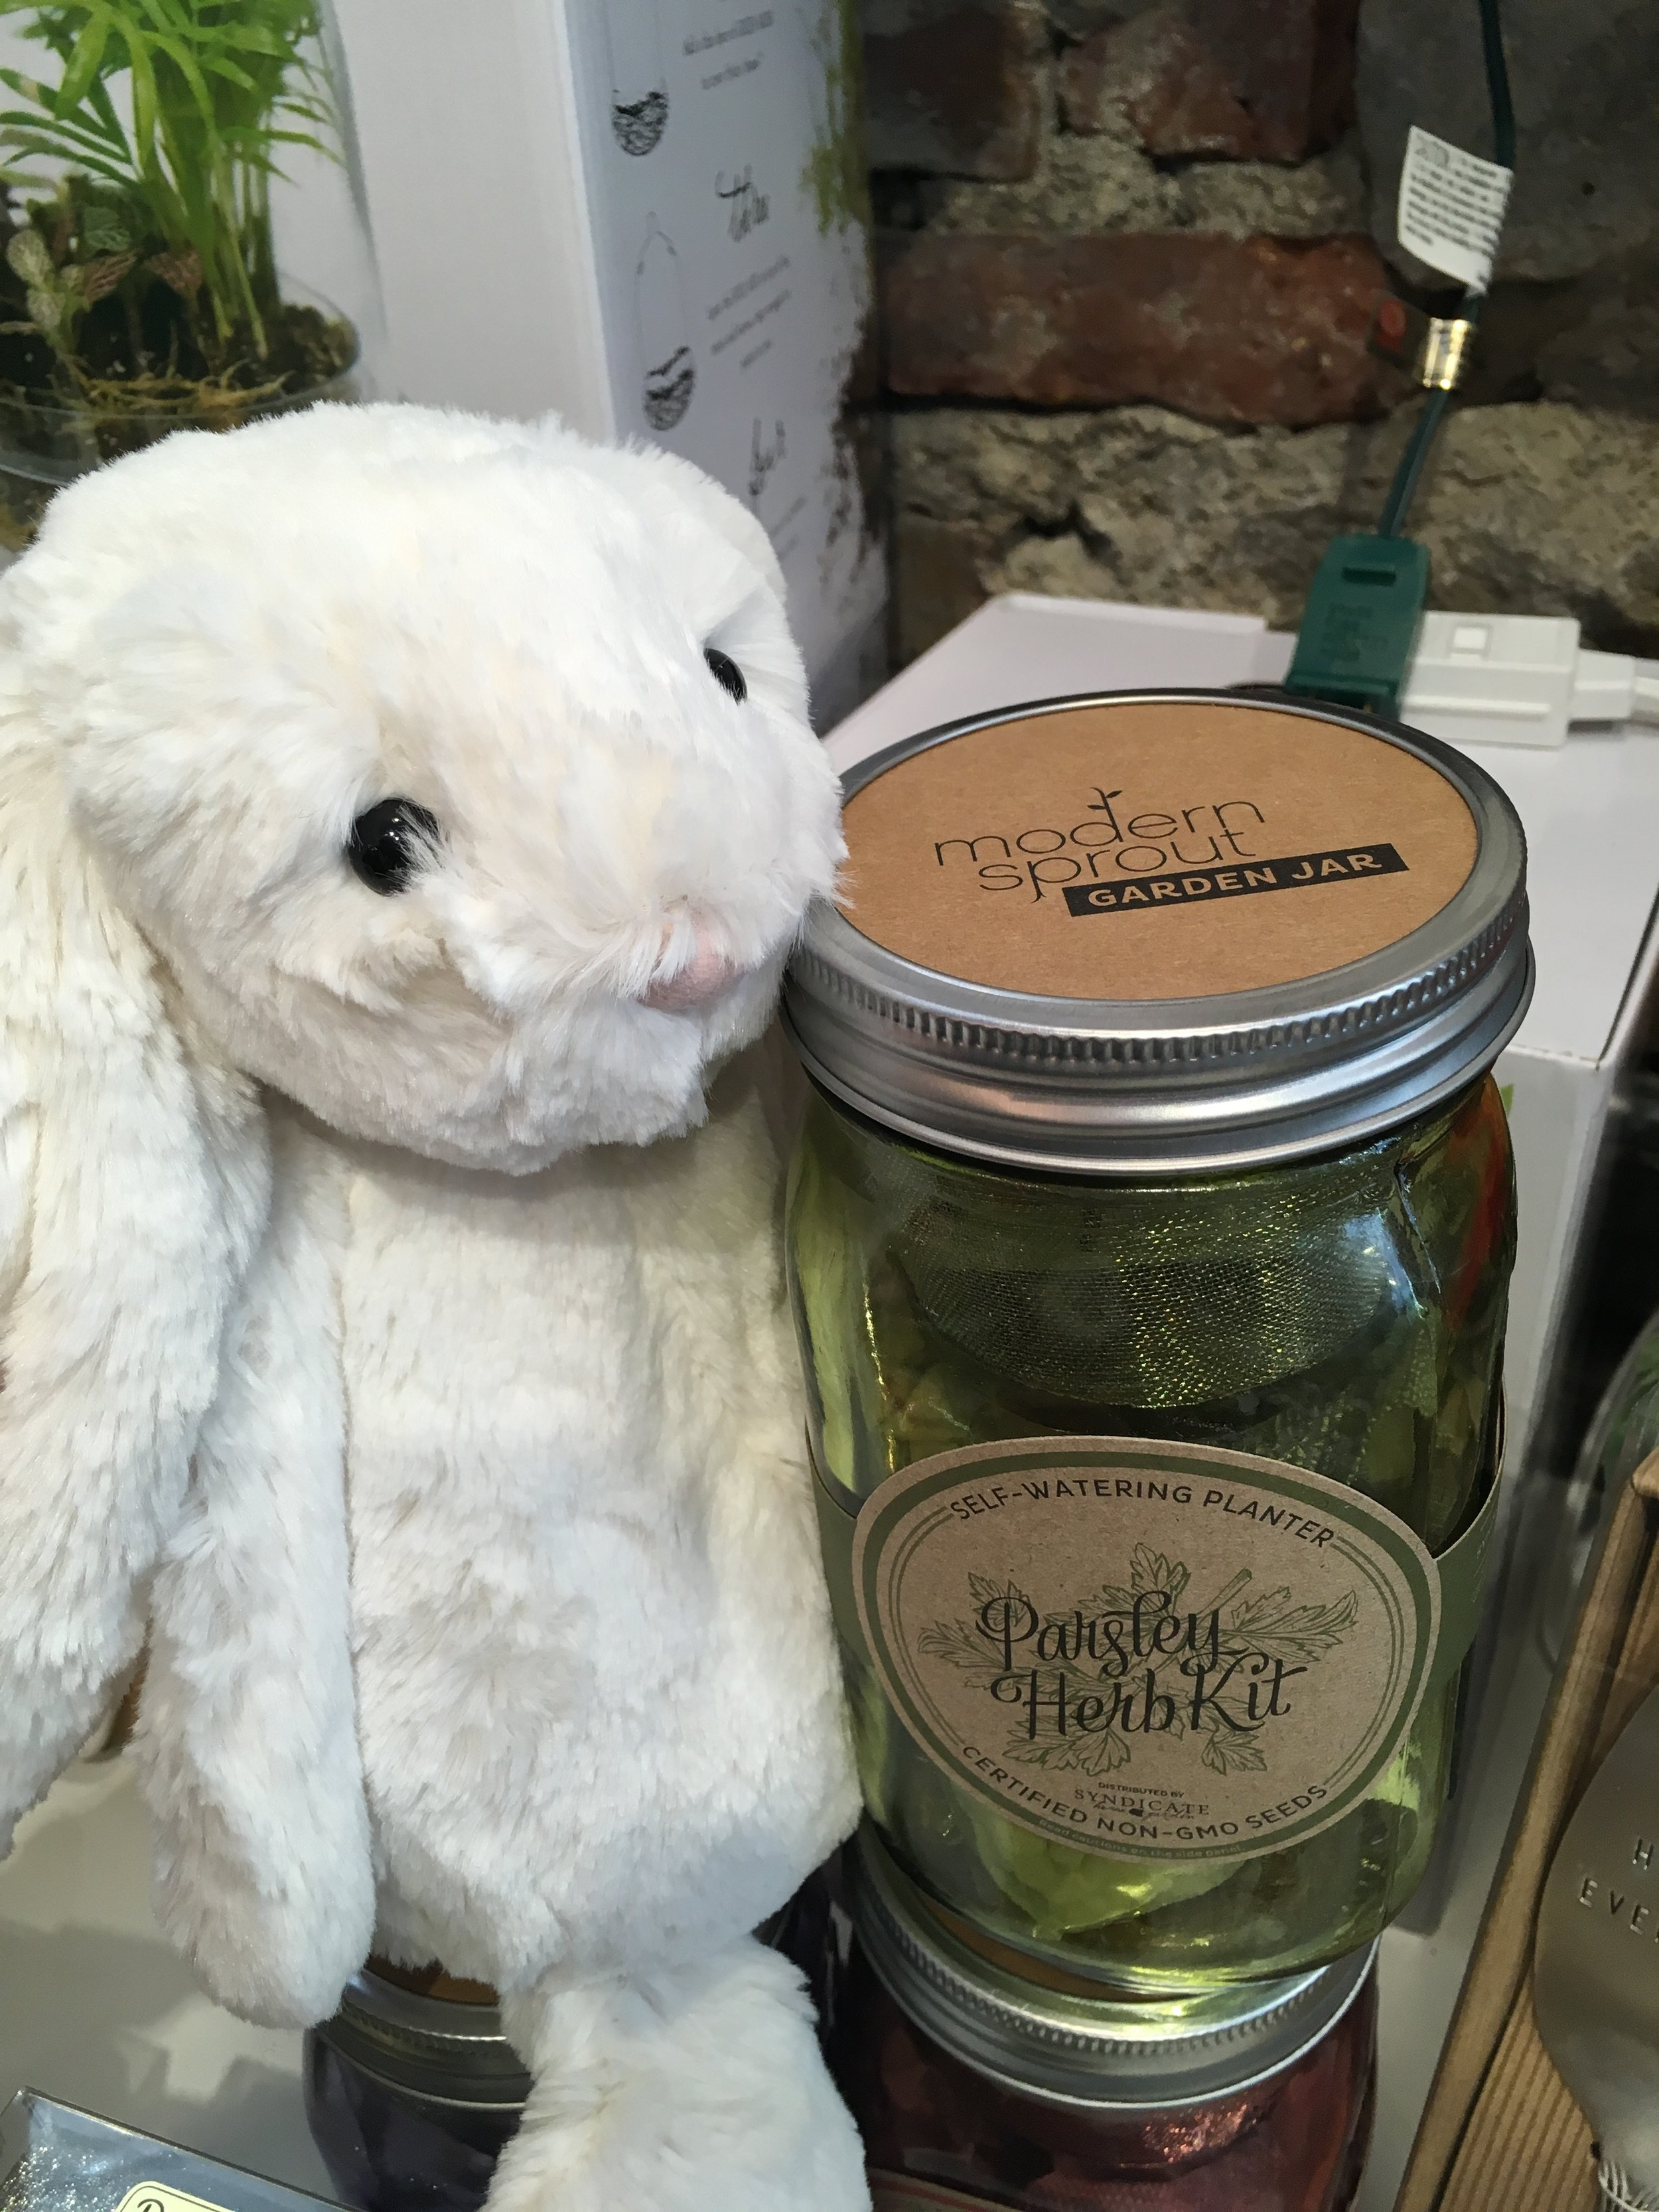 Something for everyone - Bunnies for the little ones and grow kits for Mom!